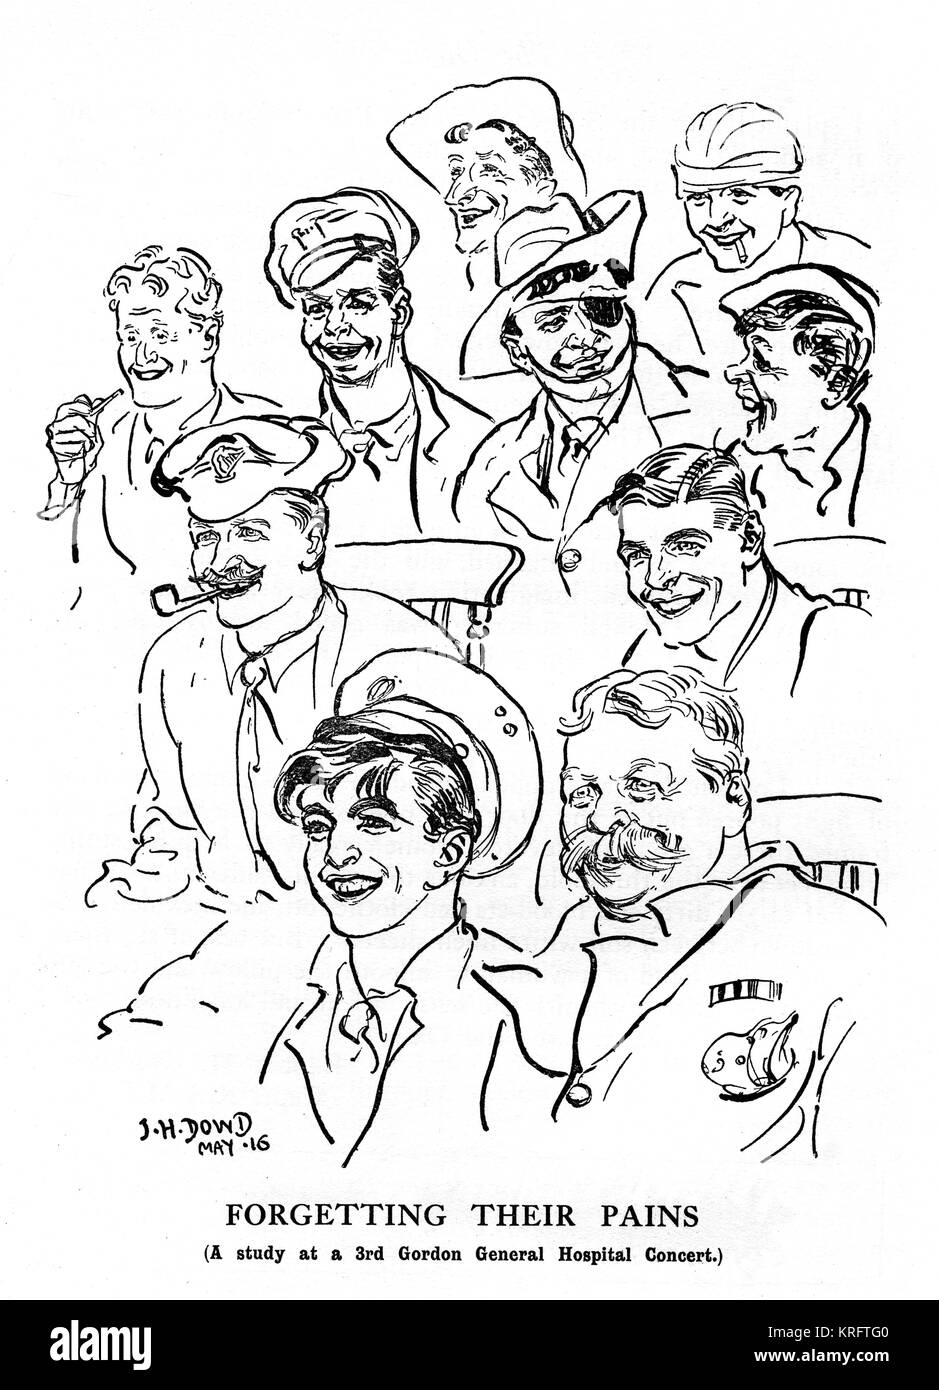 A study of the various faces of convalescent soldiers enjoying some entertainment at the 3rd Gordon General Hospital - Stock Image